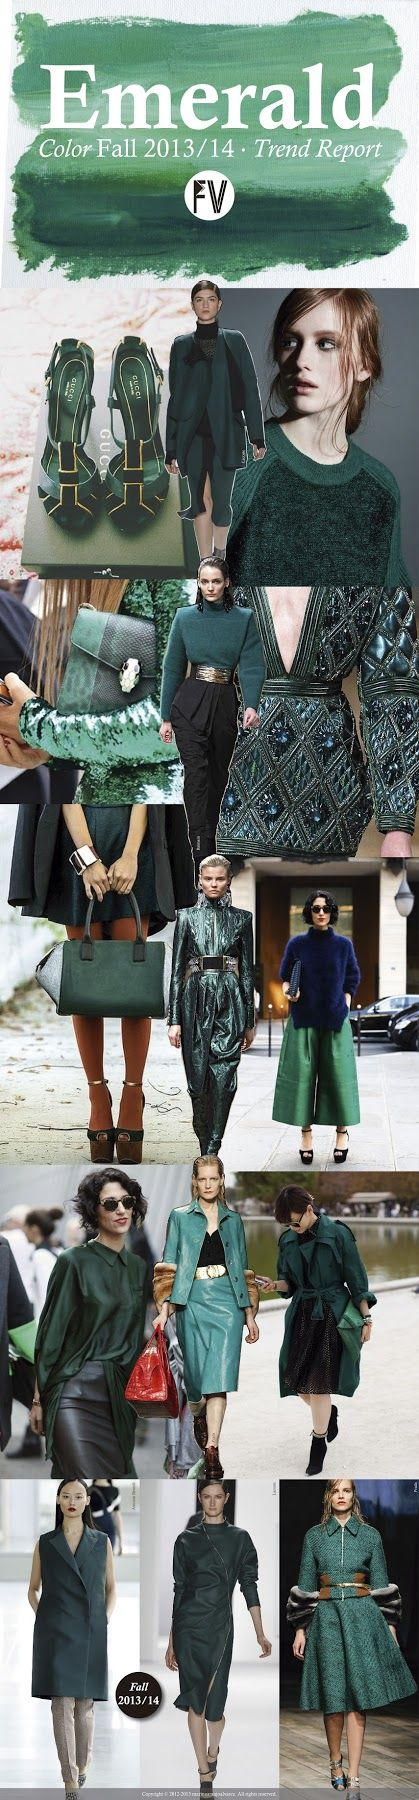 Trend Fall 14 FASHION VIGNETTE: [ TREND REPORT ] EMERALD by Marina Araujo Alvarez ..swept away emerald